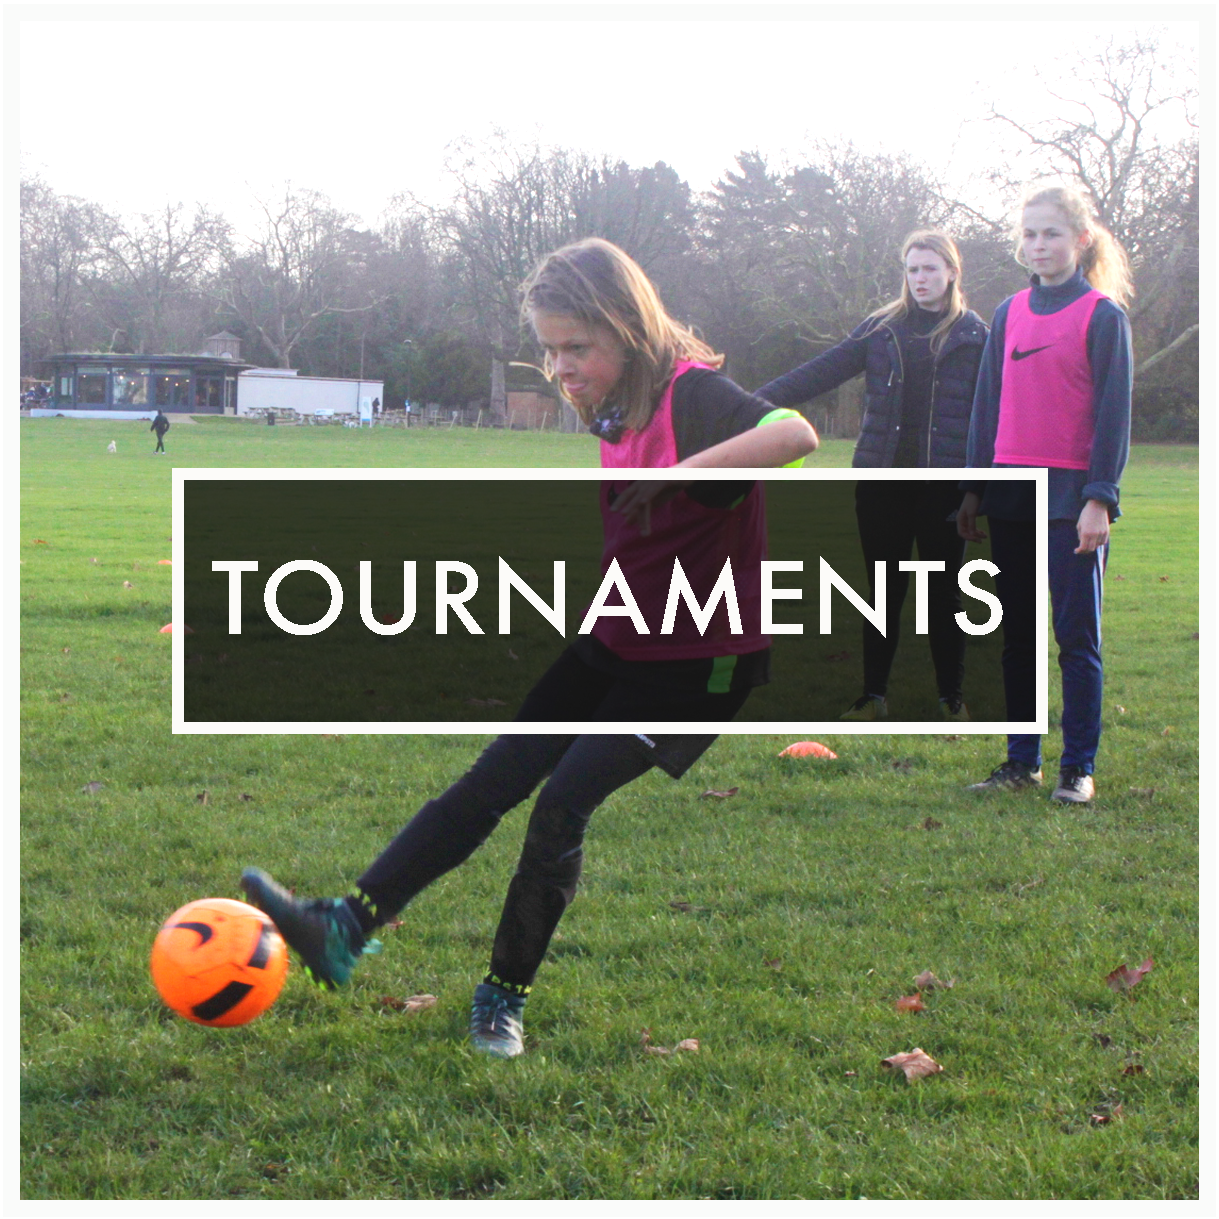 Participate in Girls United tournaments, support charitable causes and help us score goals across continents  Our upcoming tournament in partnership with Peckham Town celebrates International Women's Day